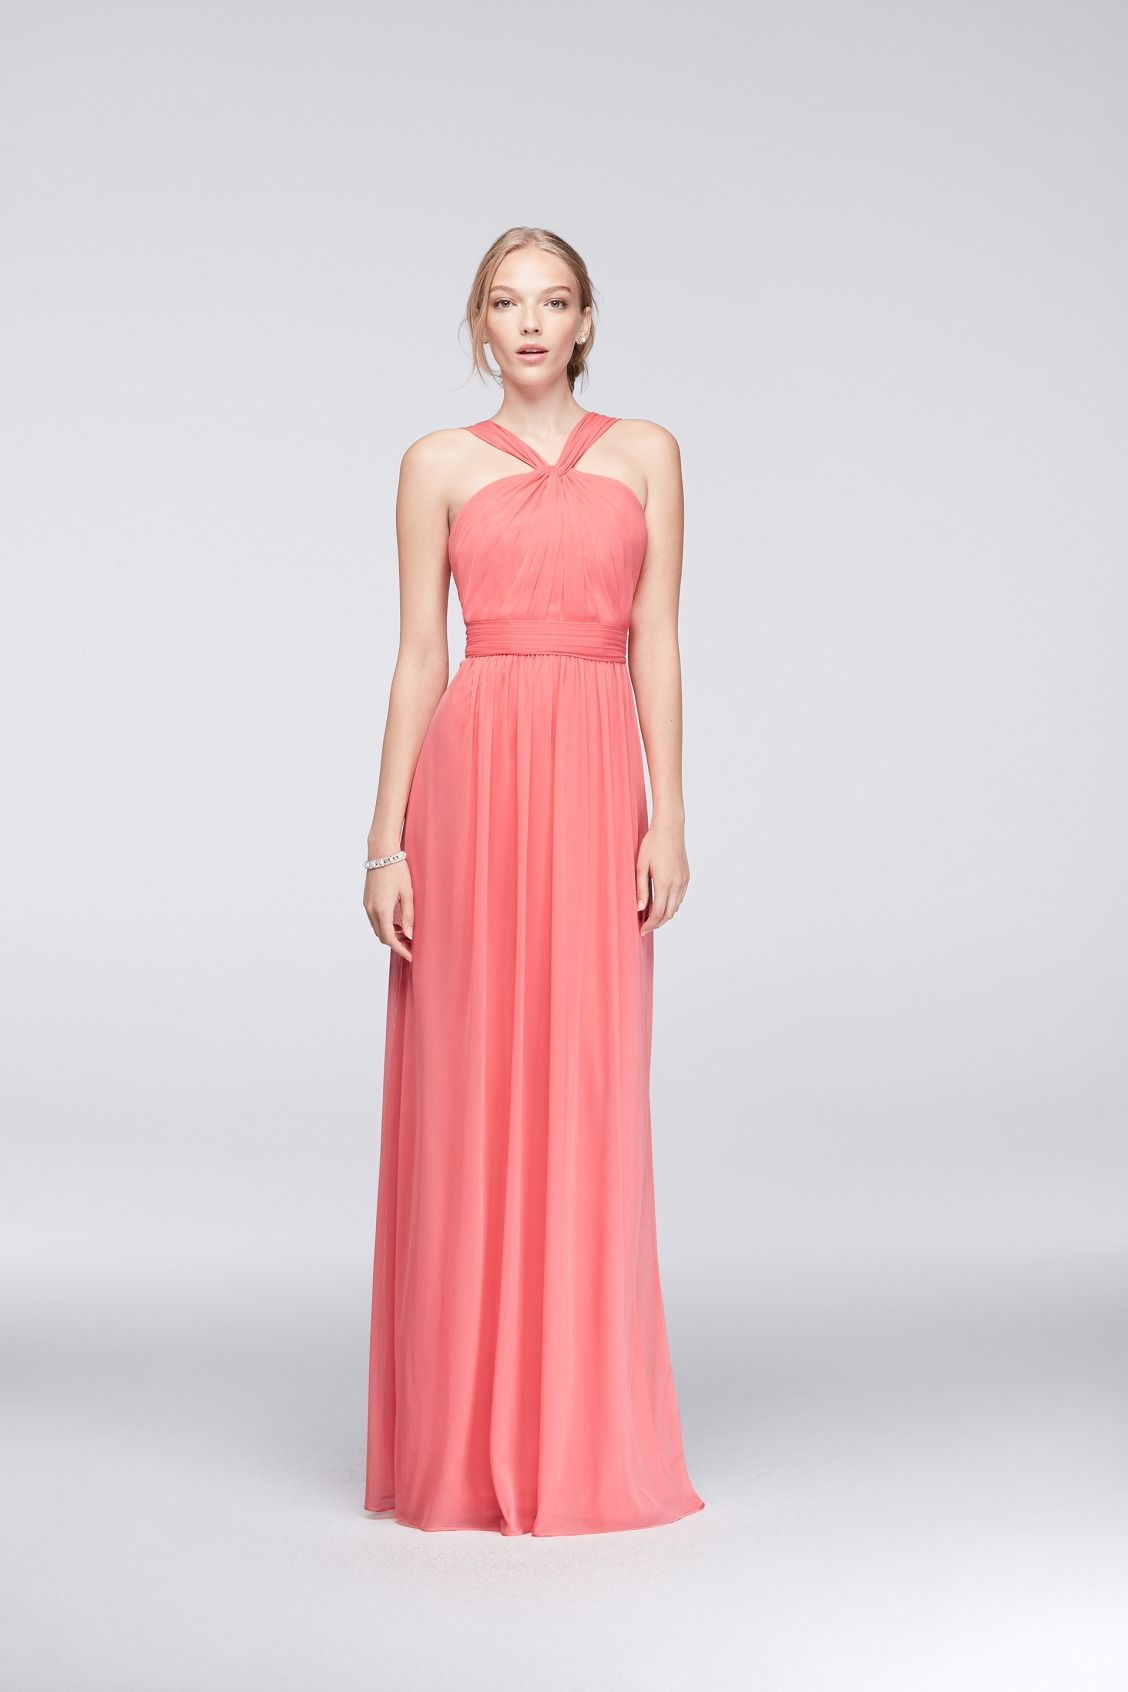 C Y Neck Long Mesh Bridesmaid Dress From David S Bridal